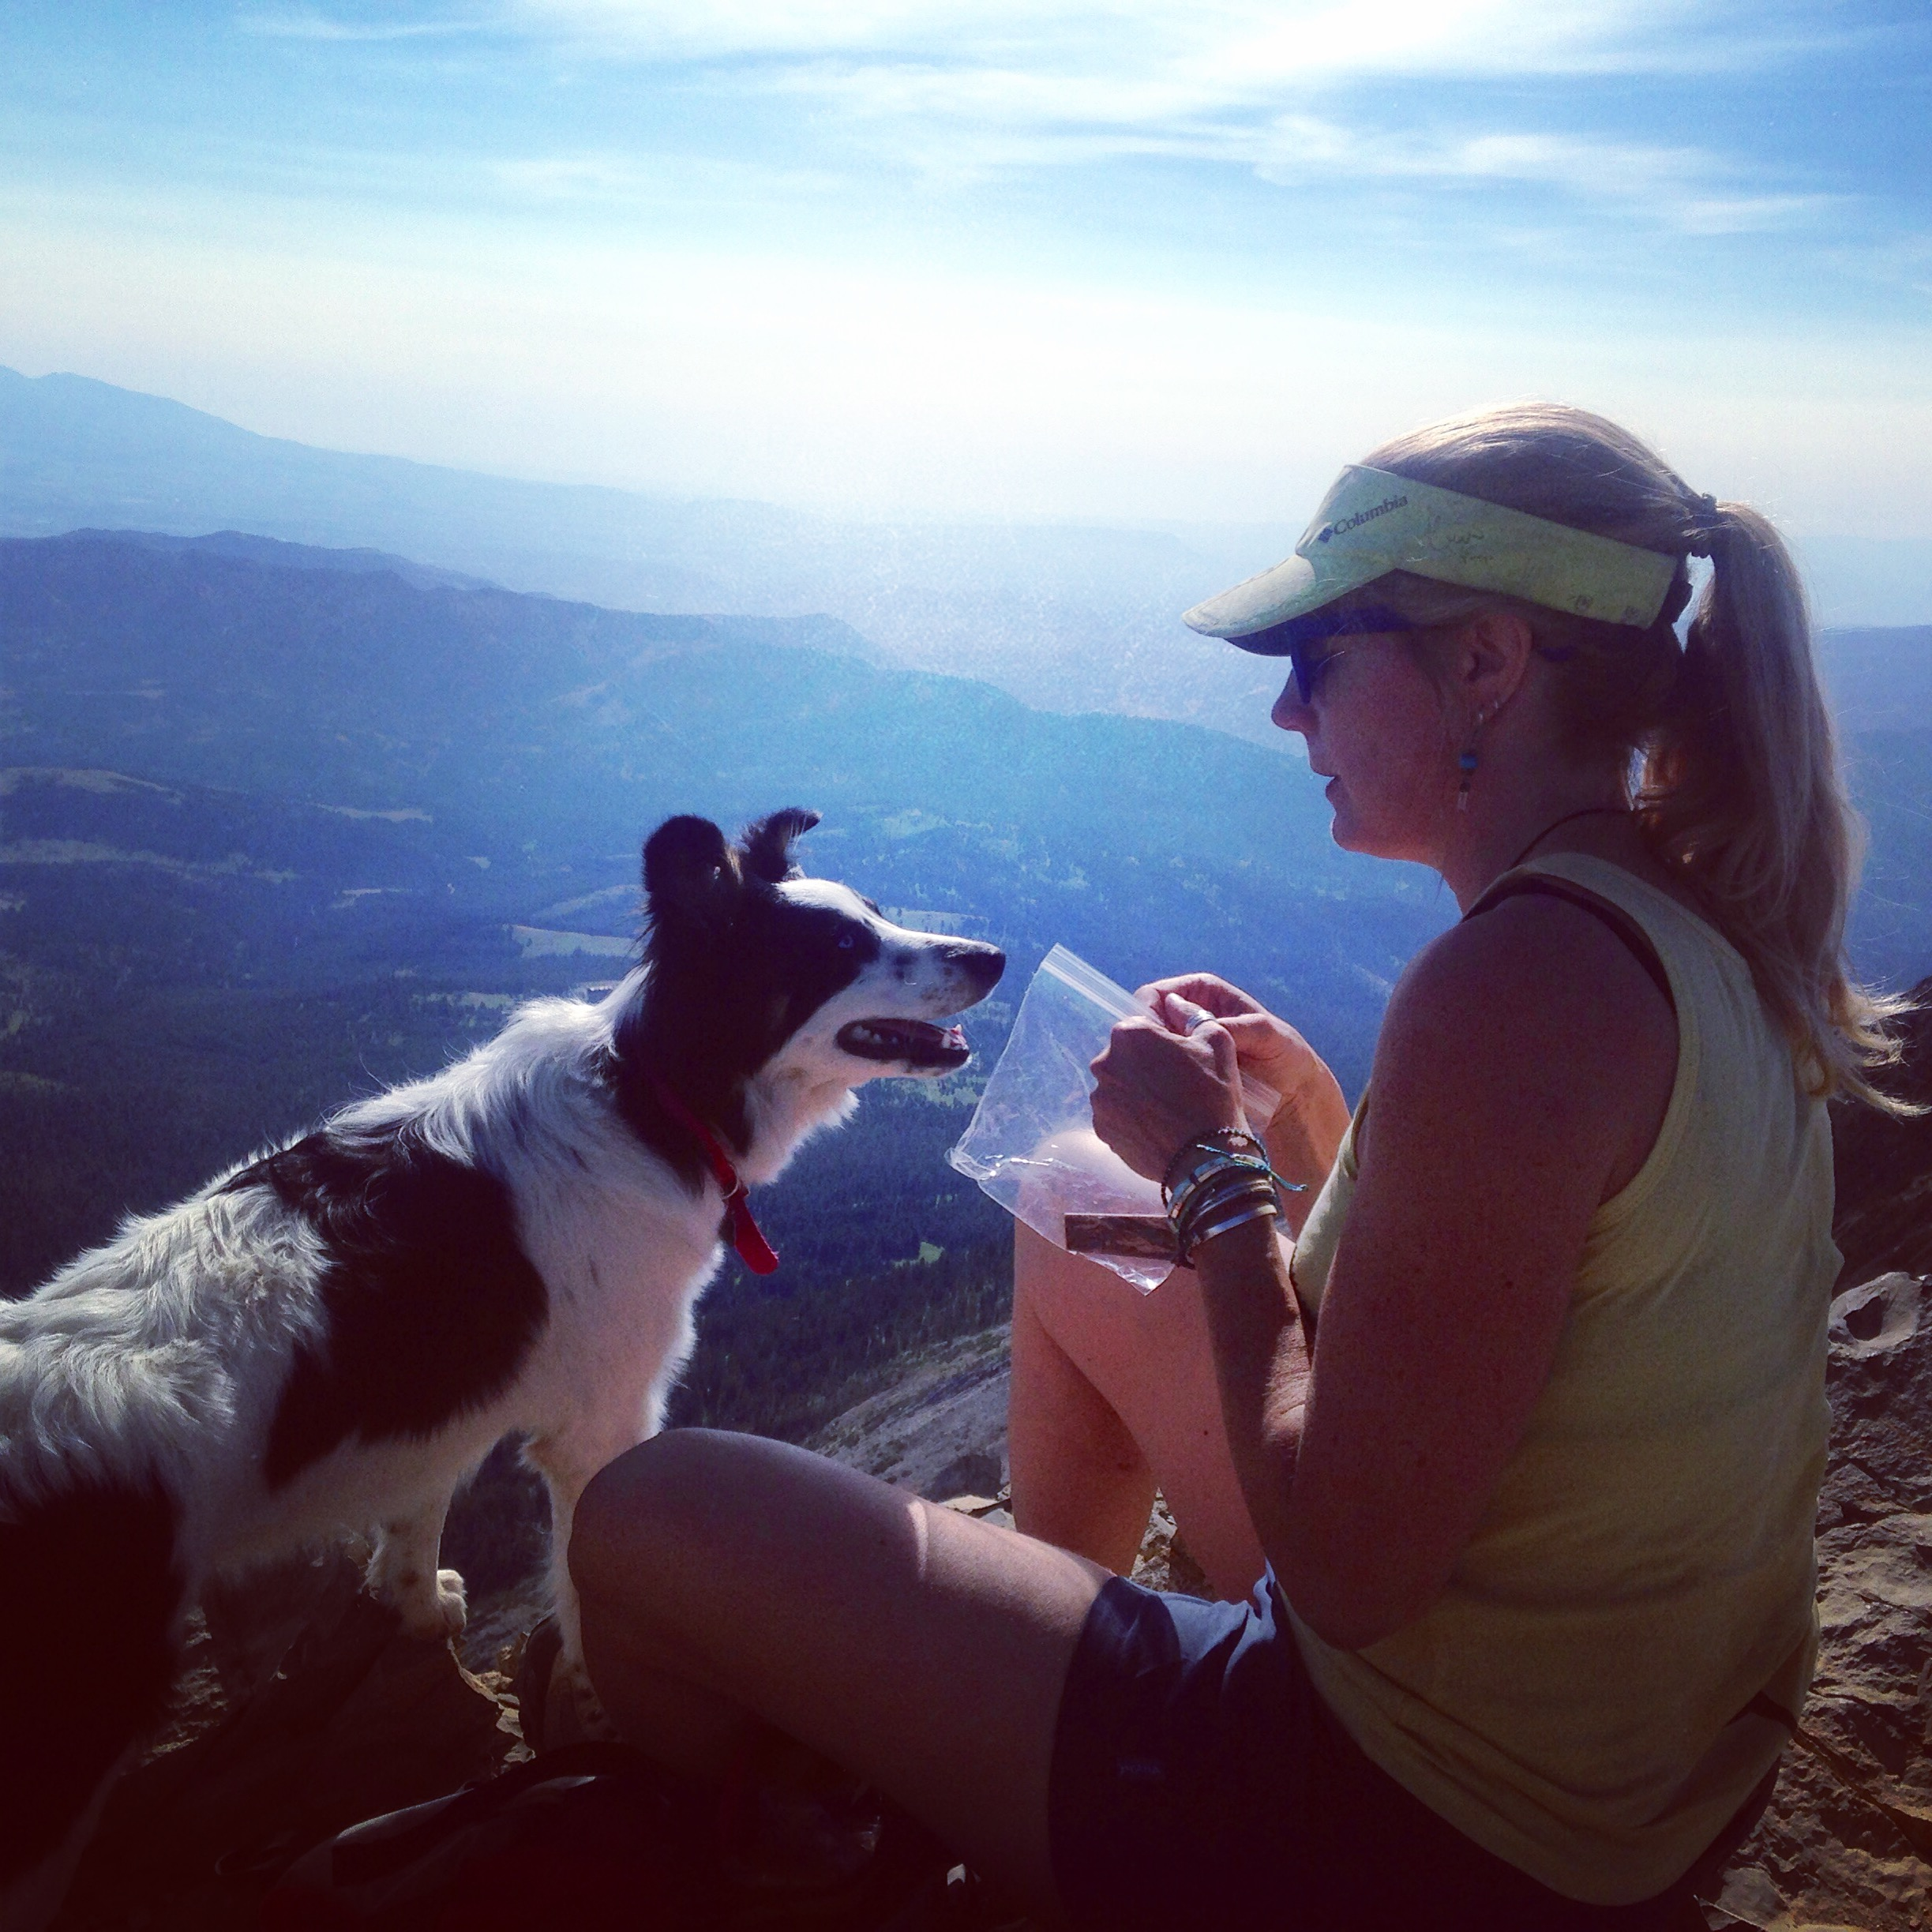 Tala earned a birthday mountaintop treat...